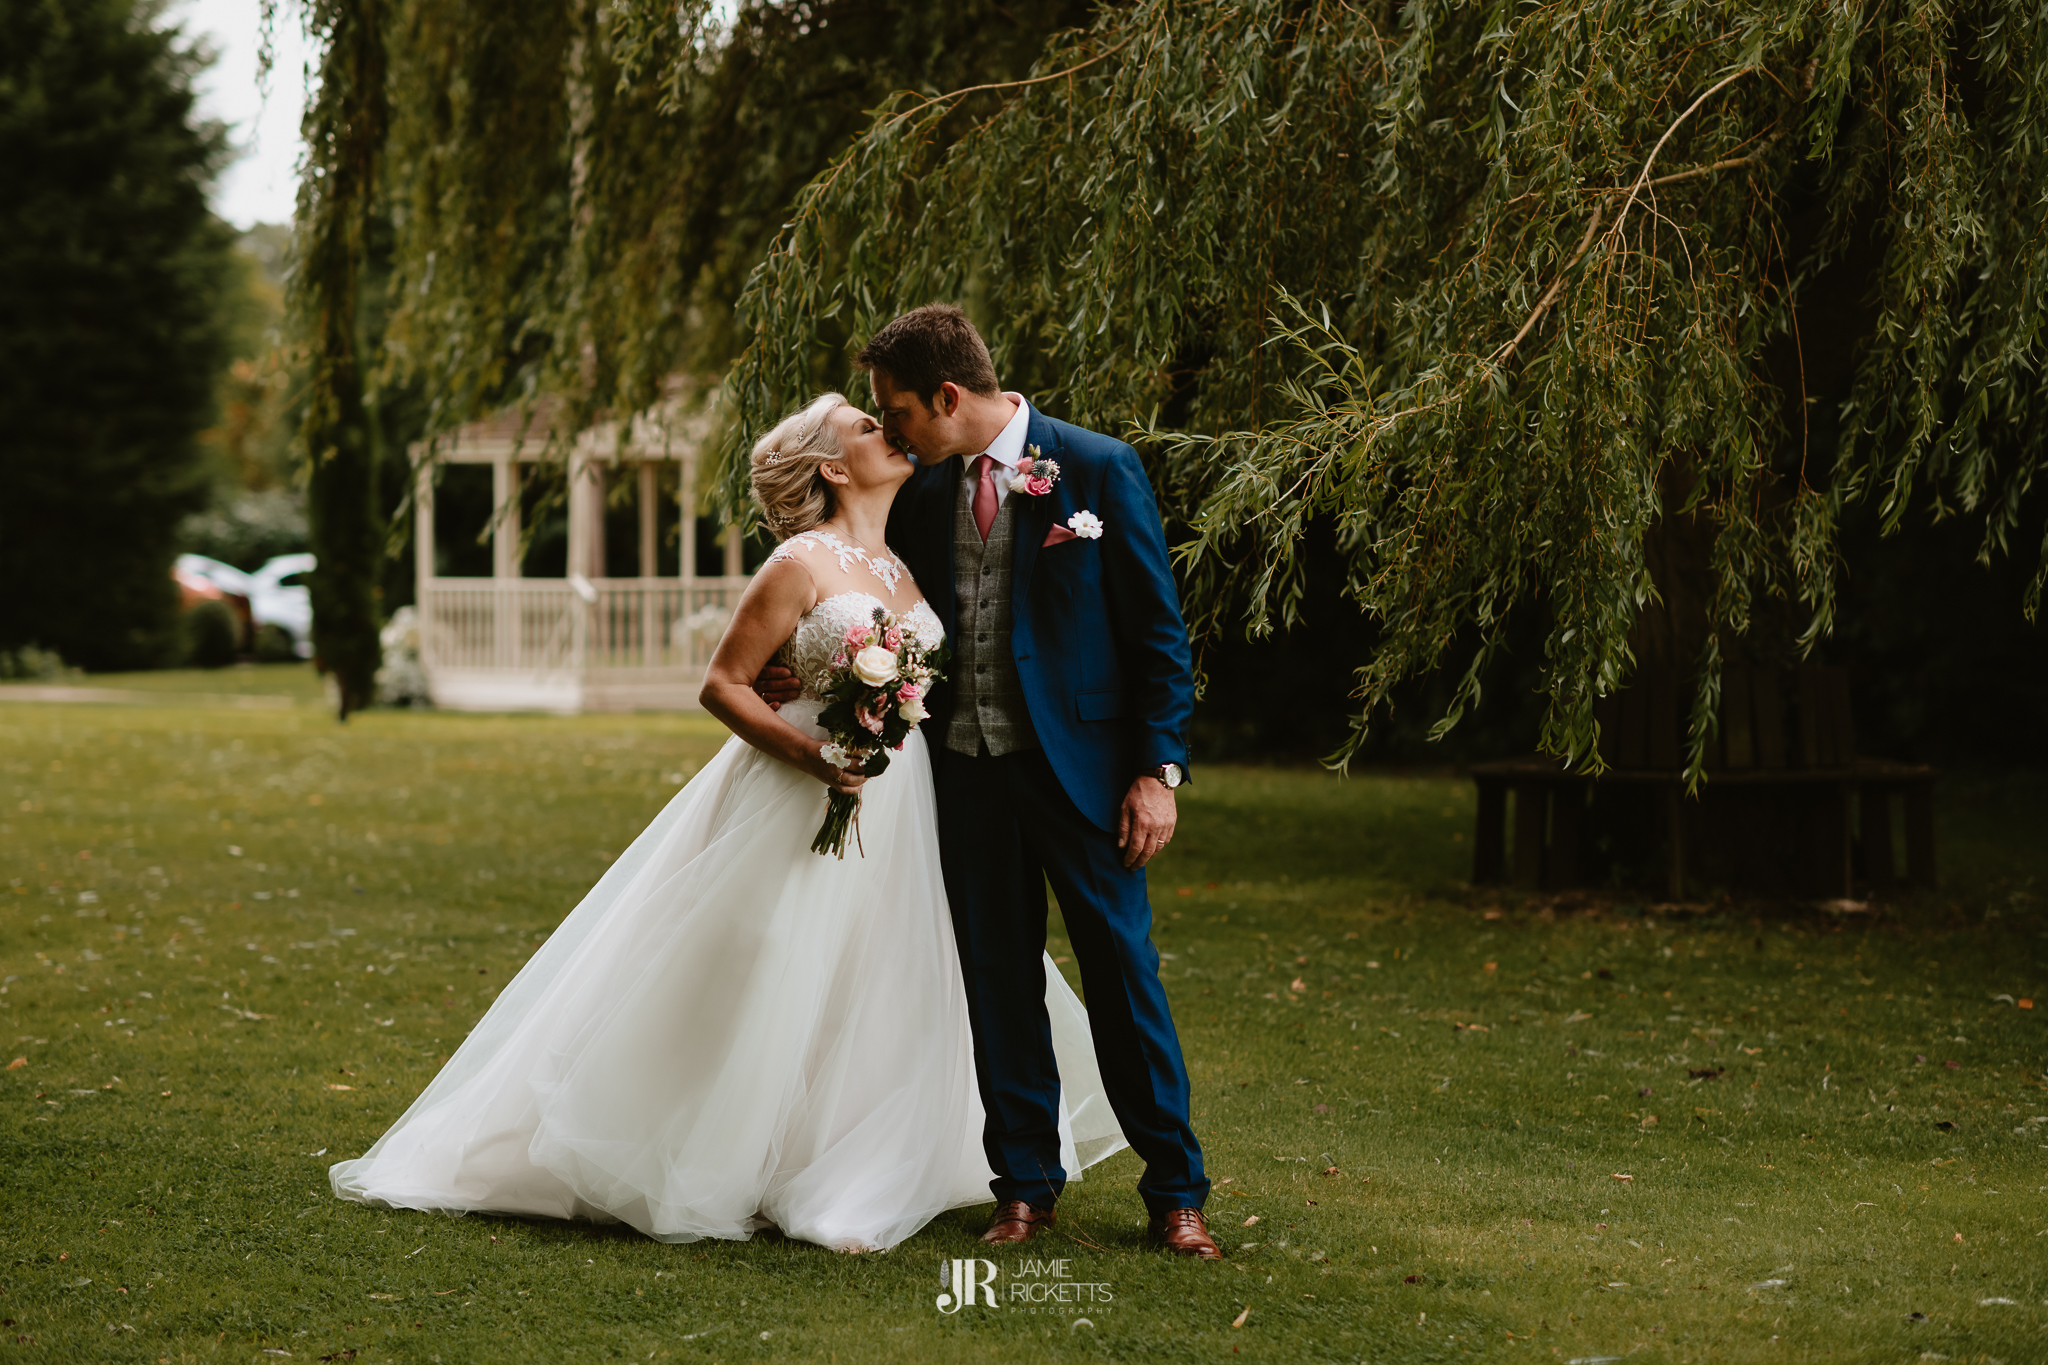 Wroxeter-Hotel-Wedding-Photography-In-Shropshire-By-Shropshire-Wedding-Photographer-Jamie-Ricketts-110.JPG